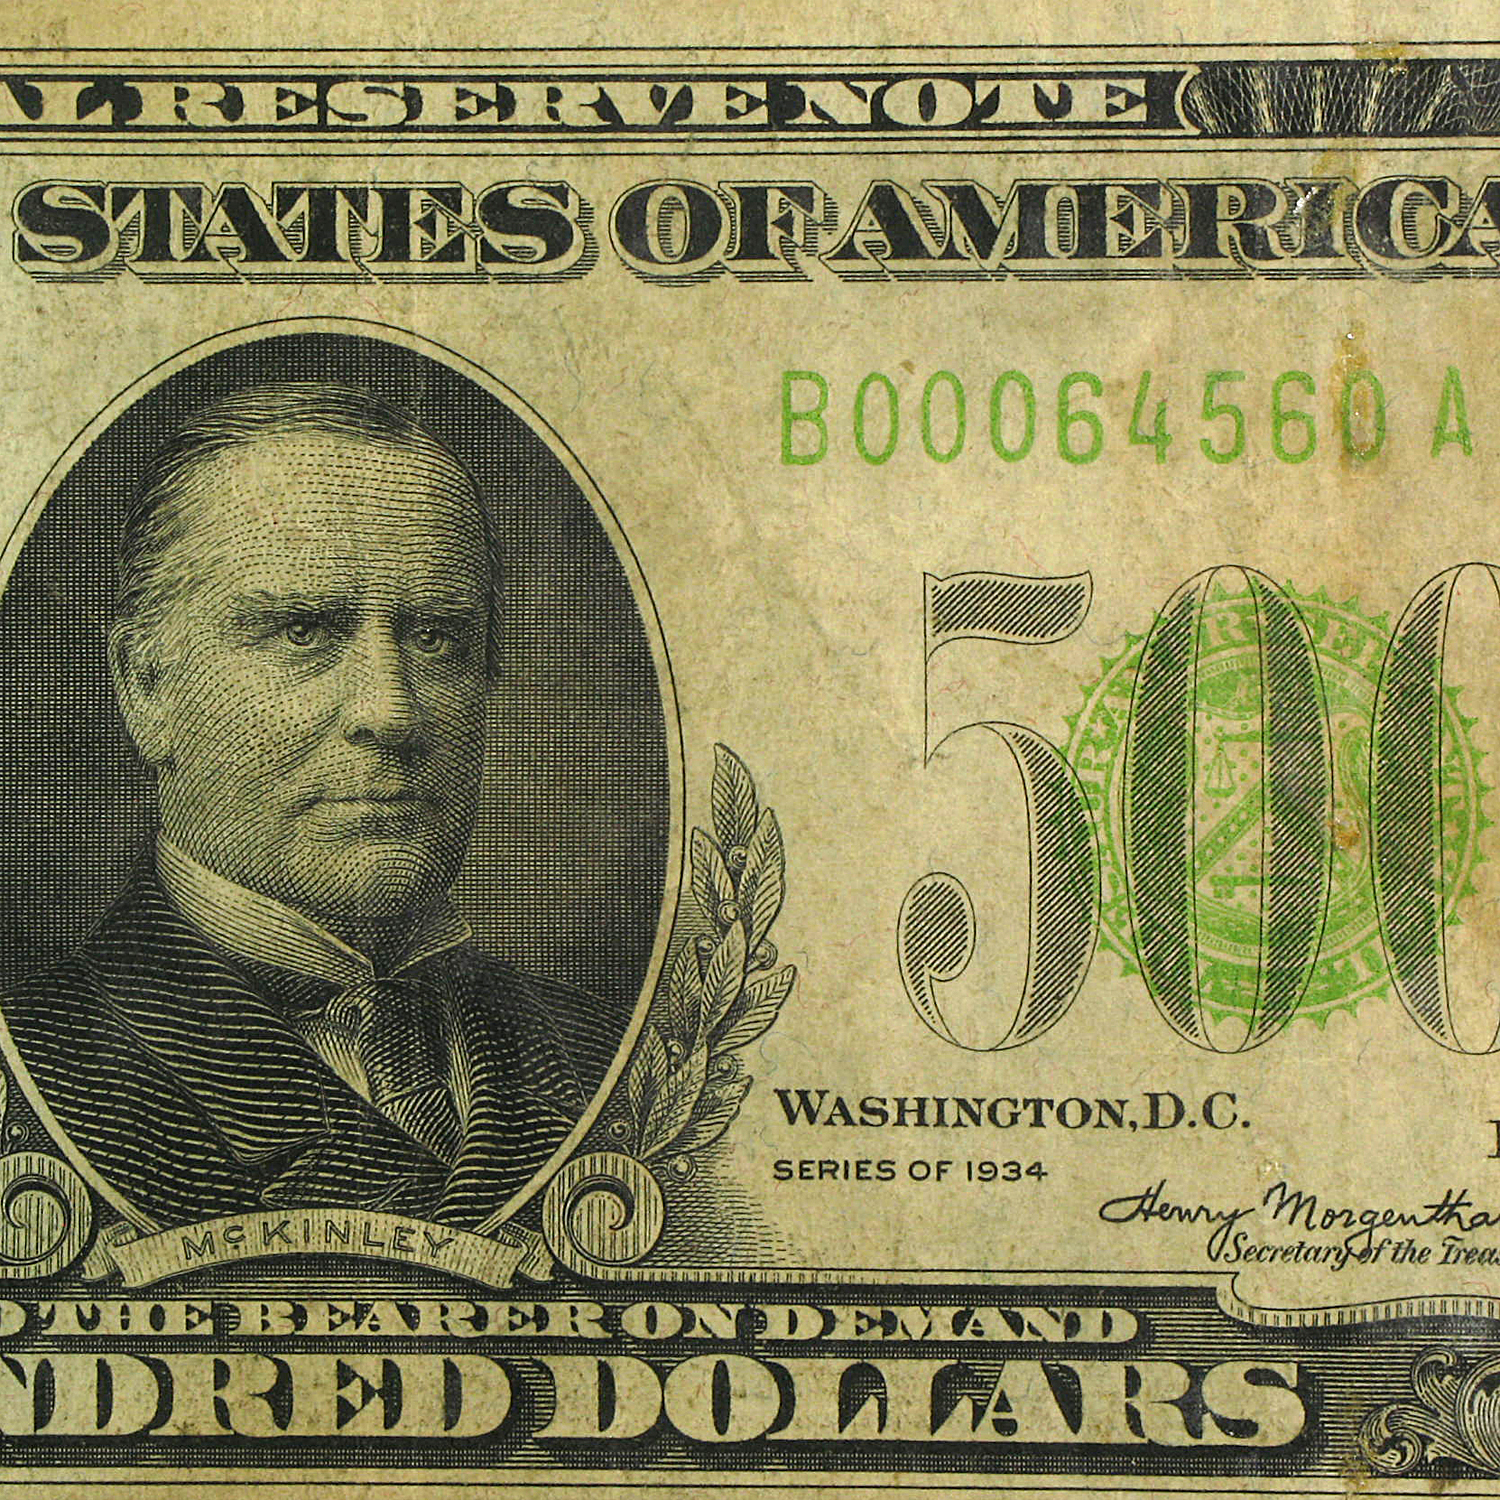 1934 (B-New York) $500 FRN Fine/VF (LGS)